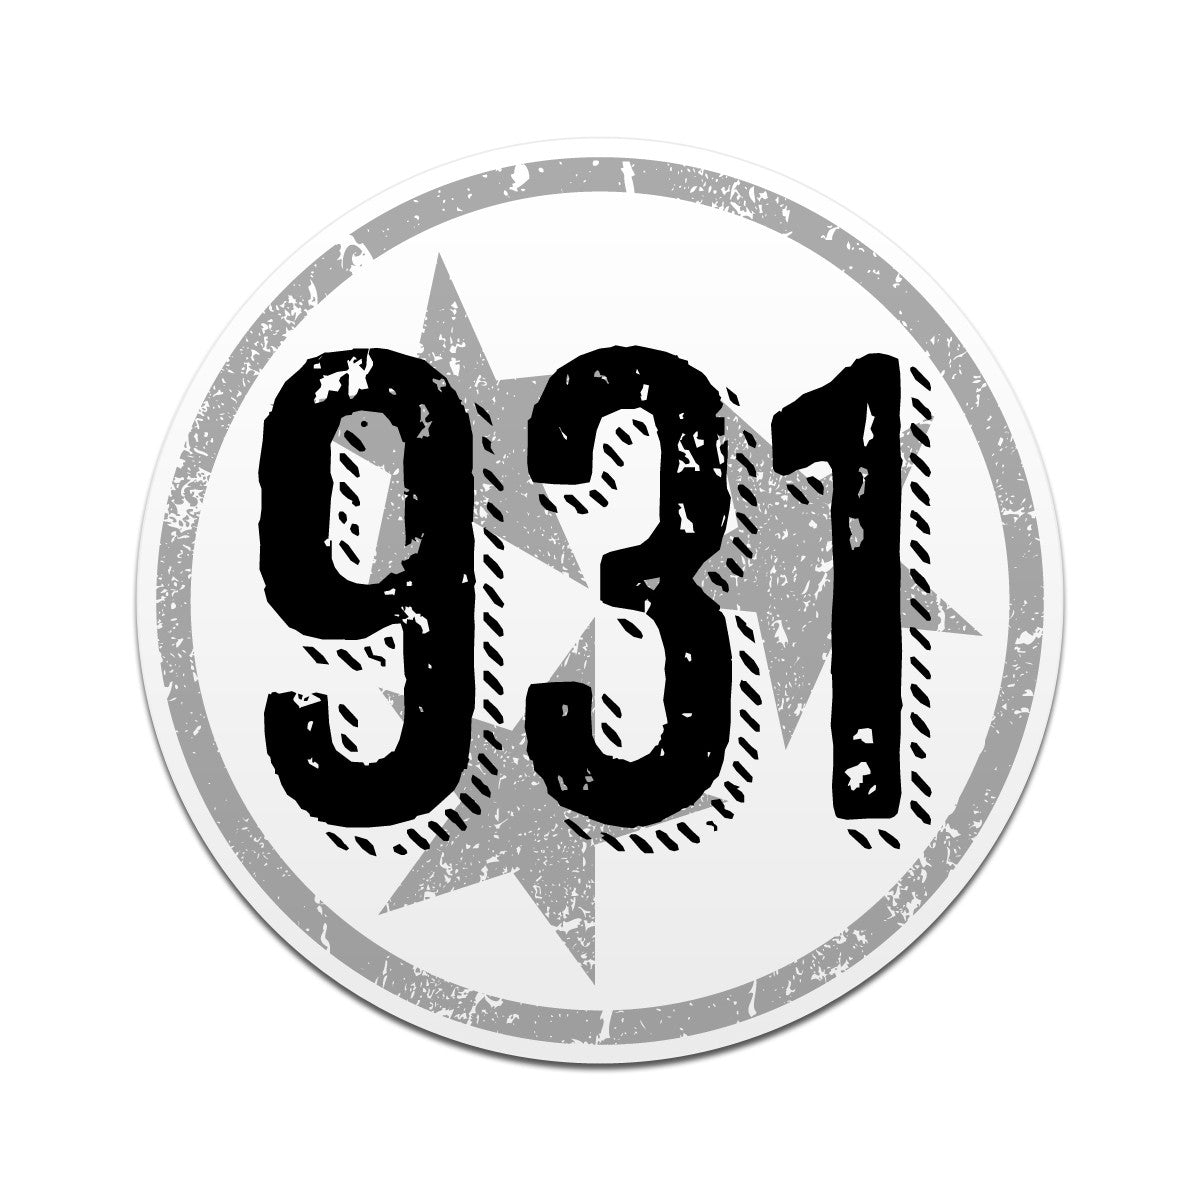 Area Code Tennessee Tri Star Decal Cookeville Putnam County TN - 931 area code